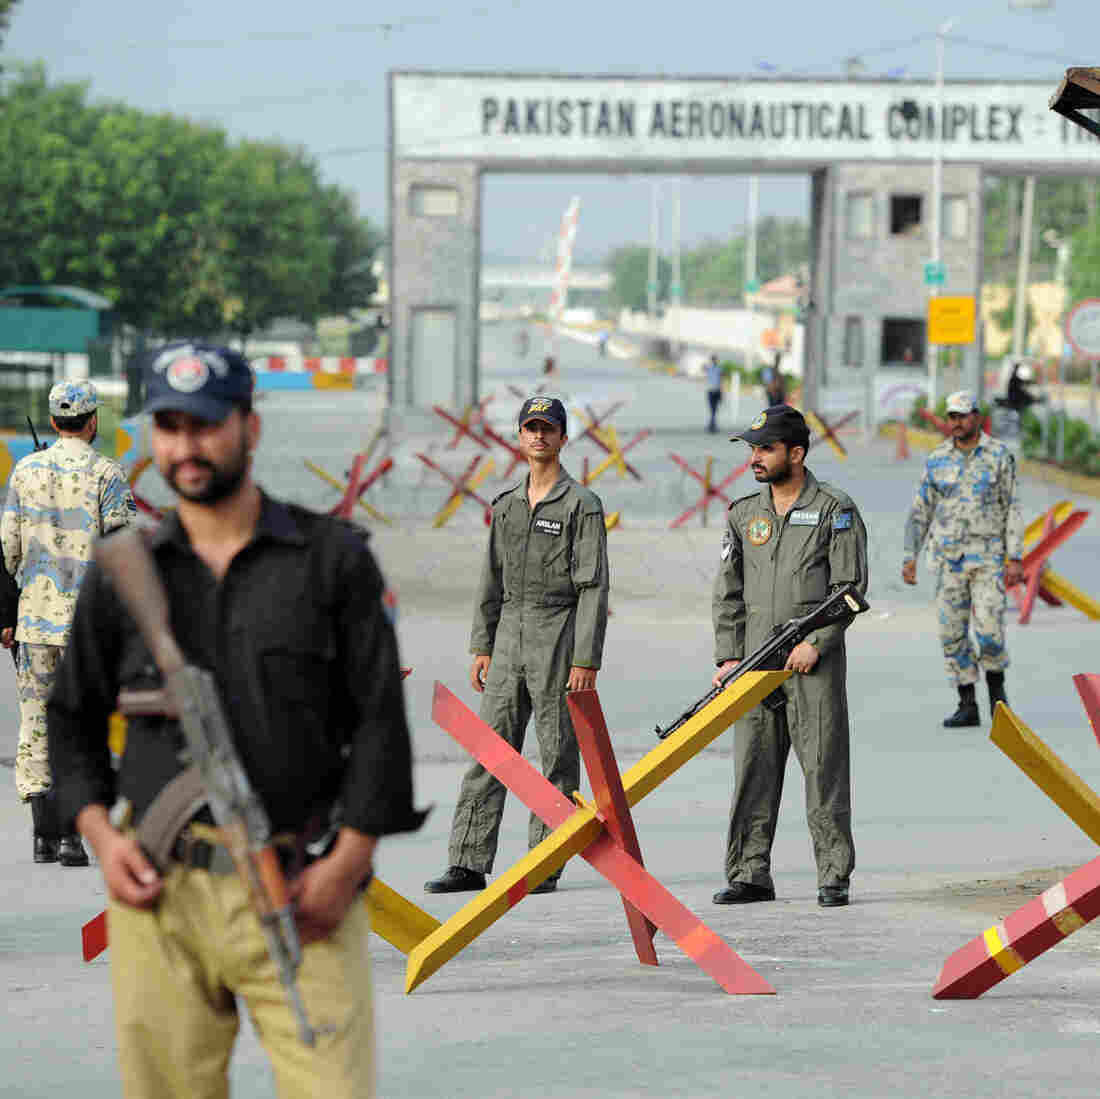 Pakistani Air Force personnel guard an air base northwest of Islamabad earlier today. It was attacked Thursday by militants armed with guns, rocket launchers and suicide vests.